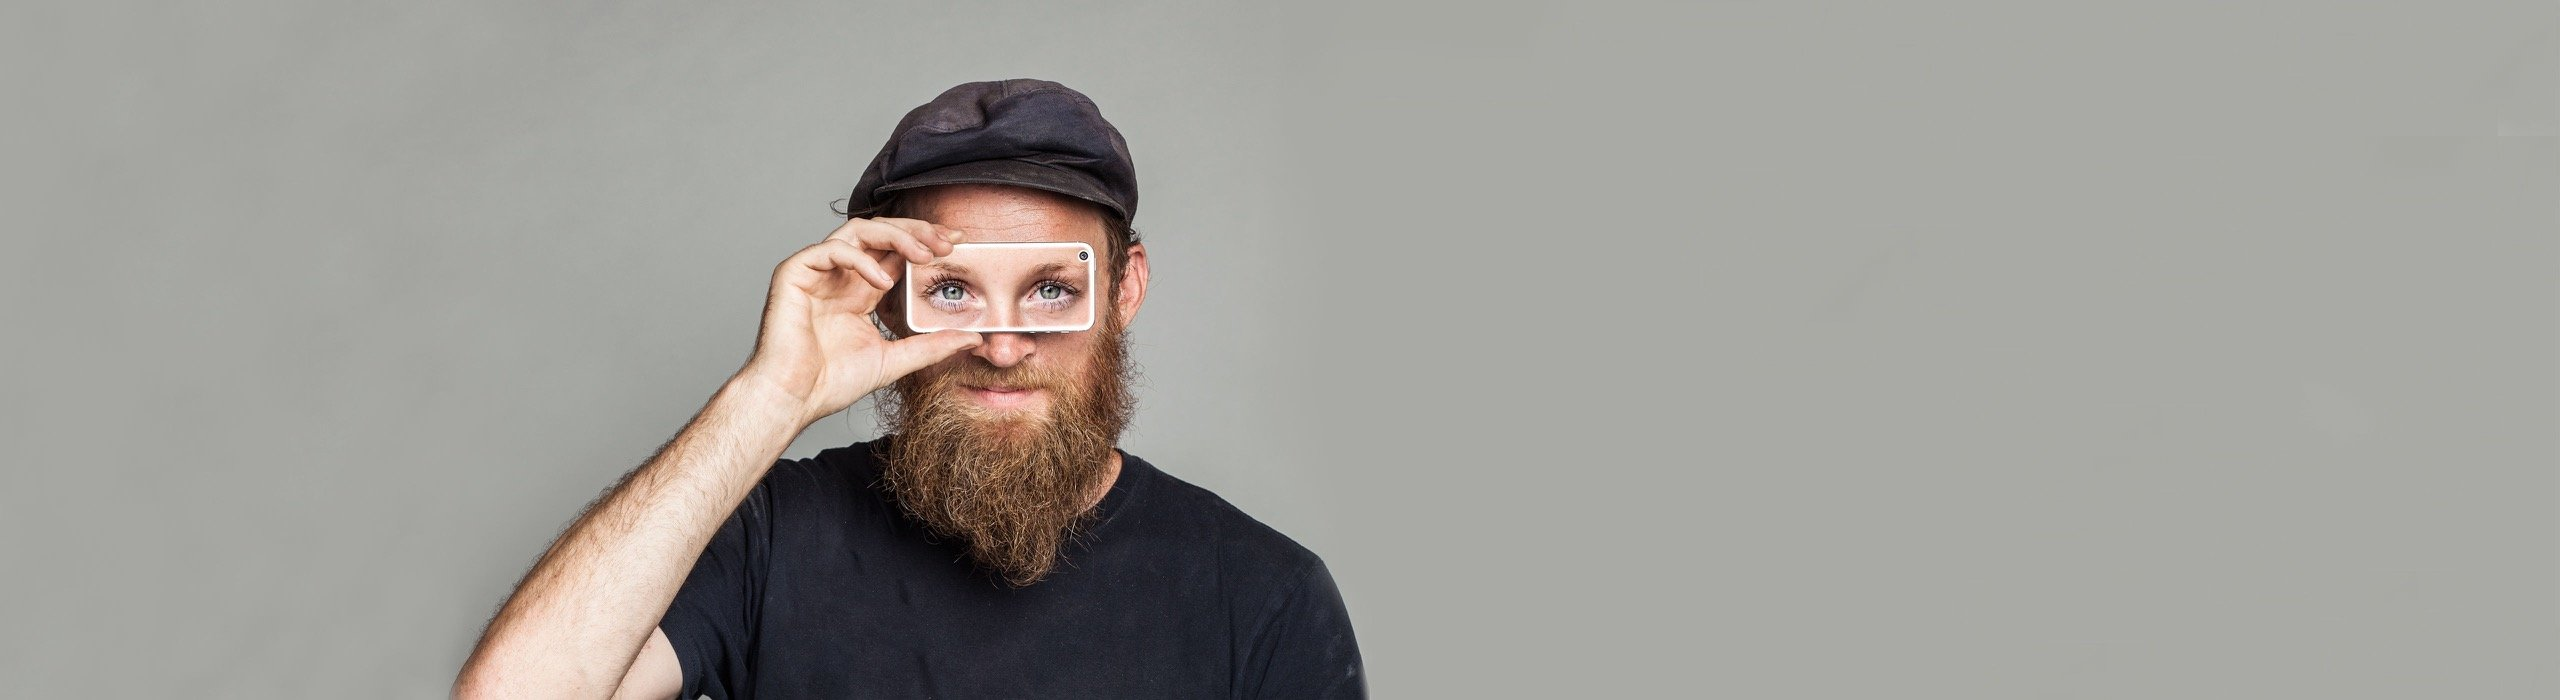 The wonderful Be My Eyes app for iOS lets you lend your eyes to the blind